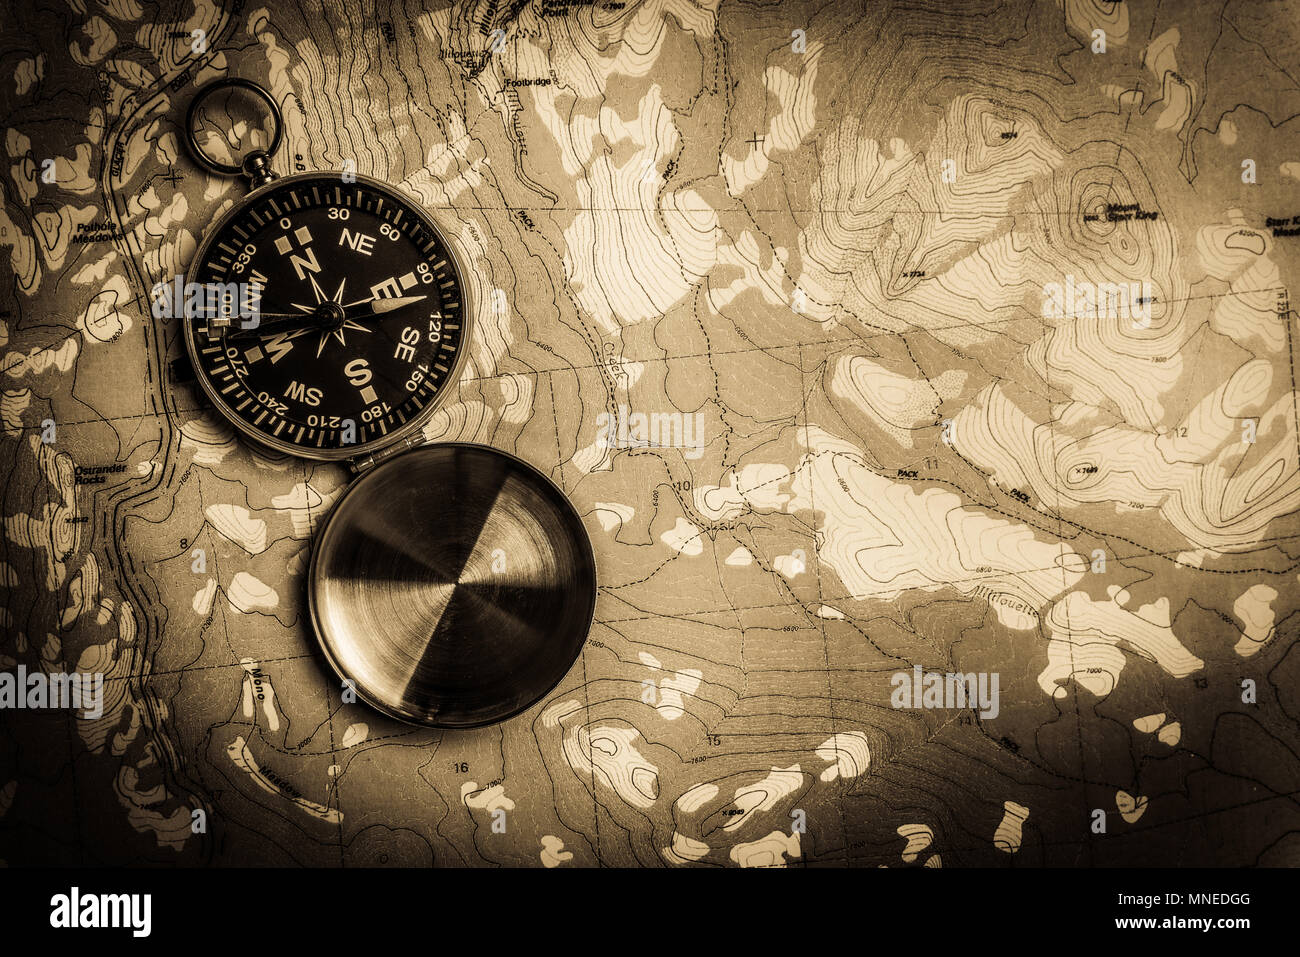 Compass on topographical map - Stock Image